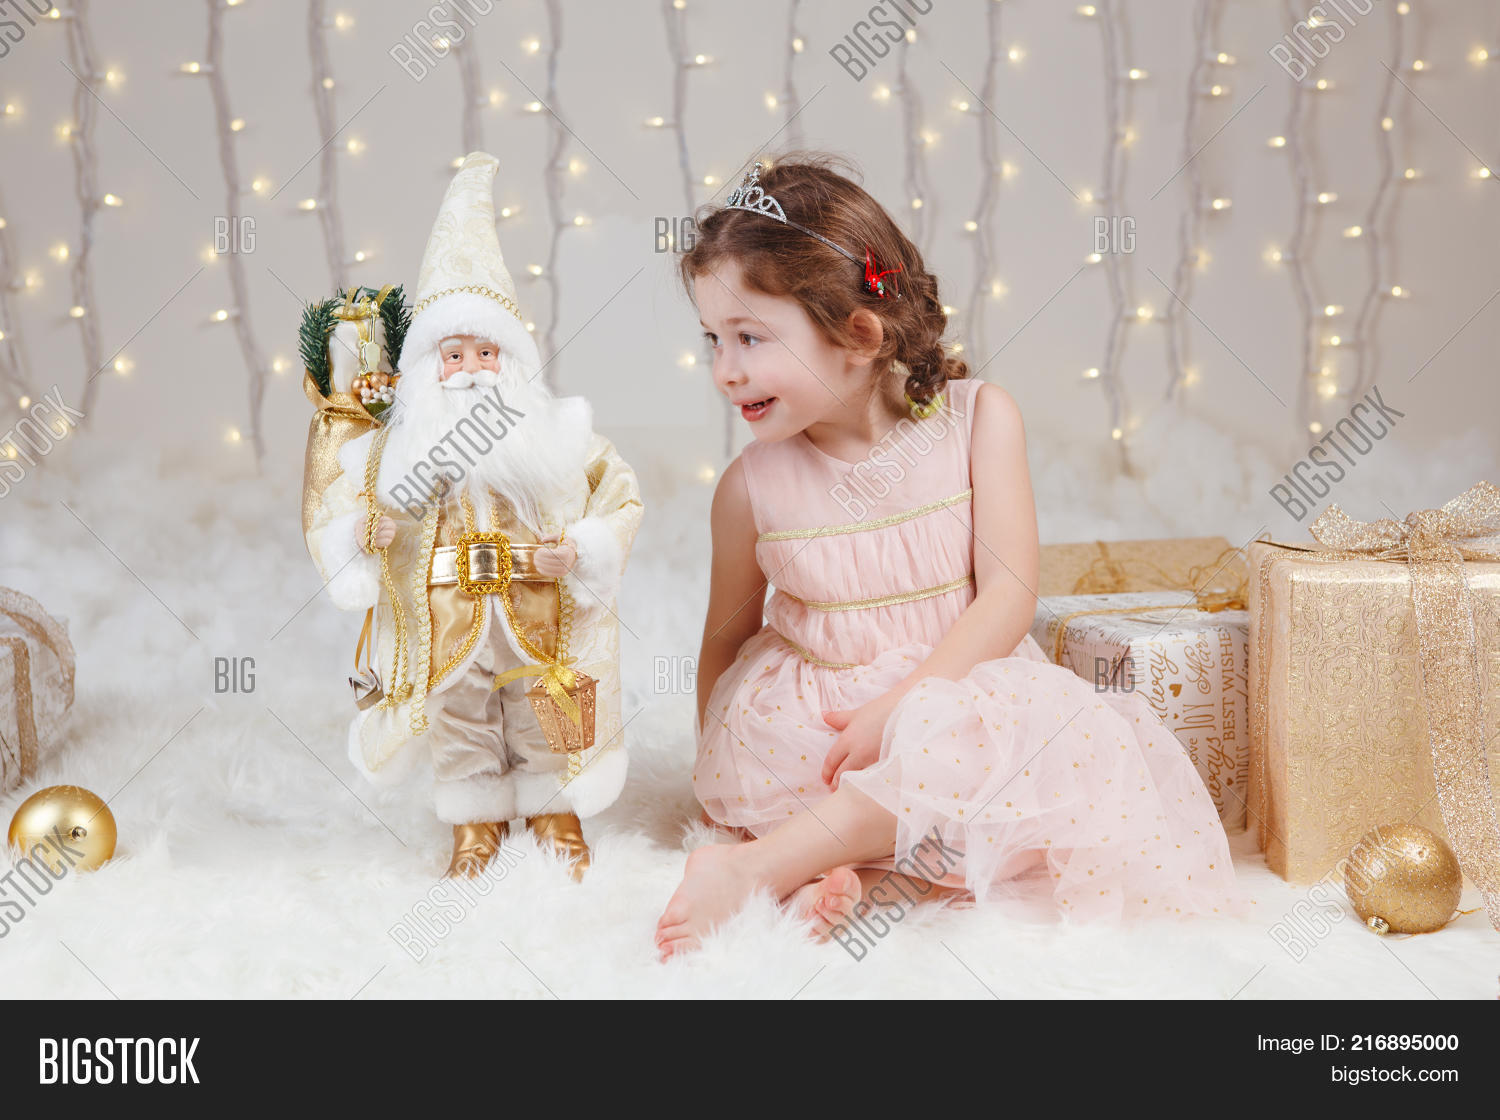 27e82182f3ab3 Portrait of white Caucasian children friends siblings celebrating Christmas  or New Year. Little cute adorable